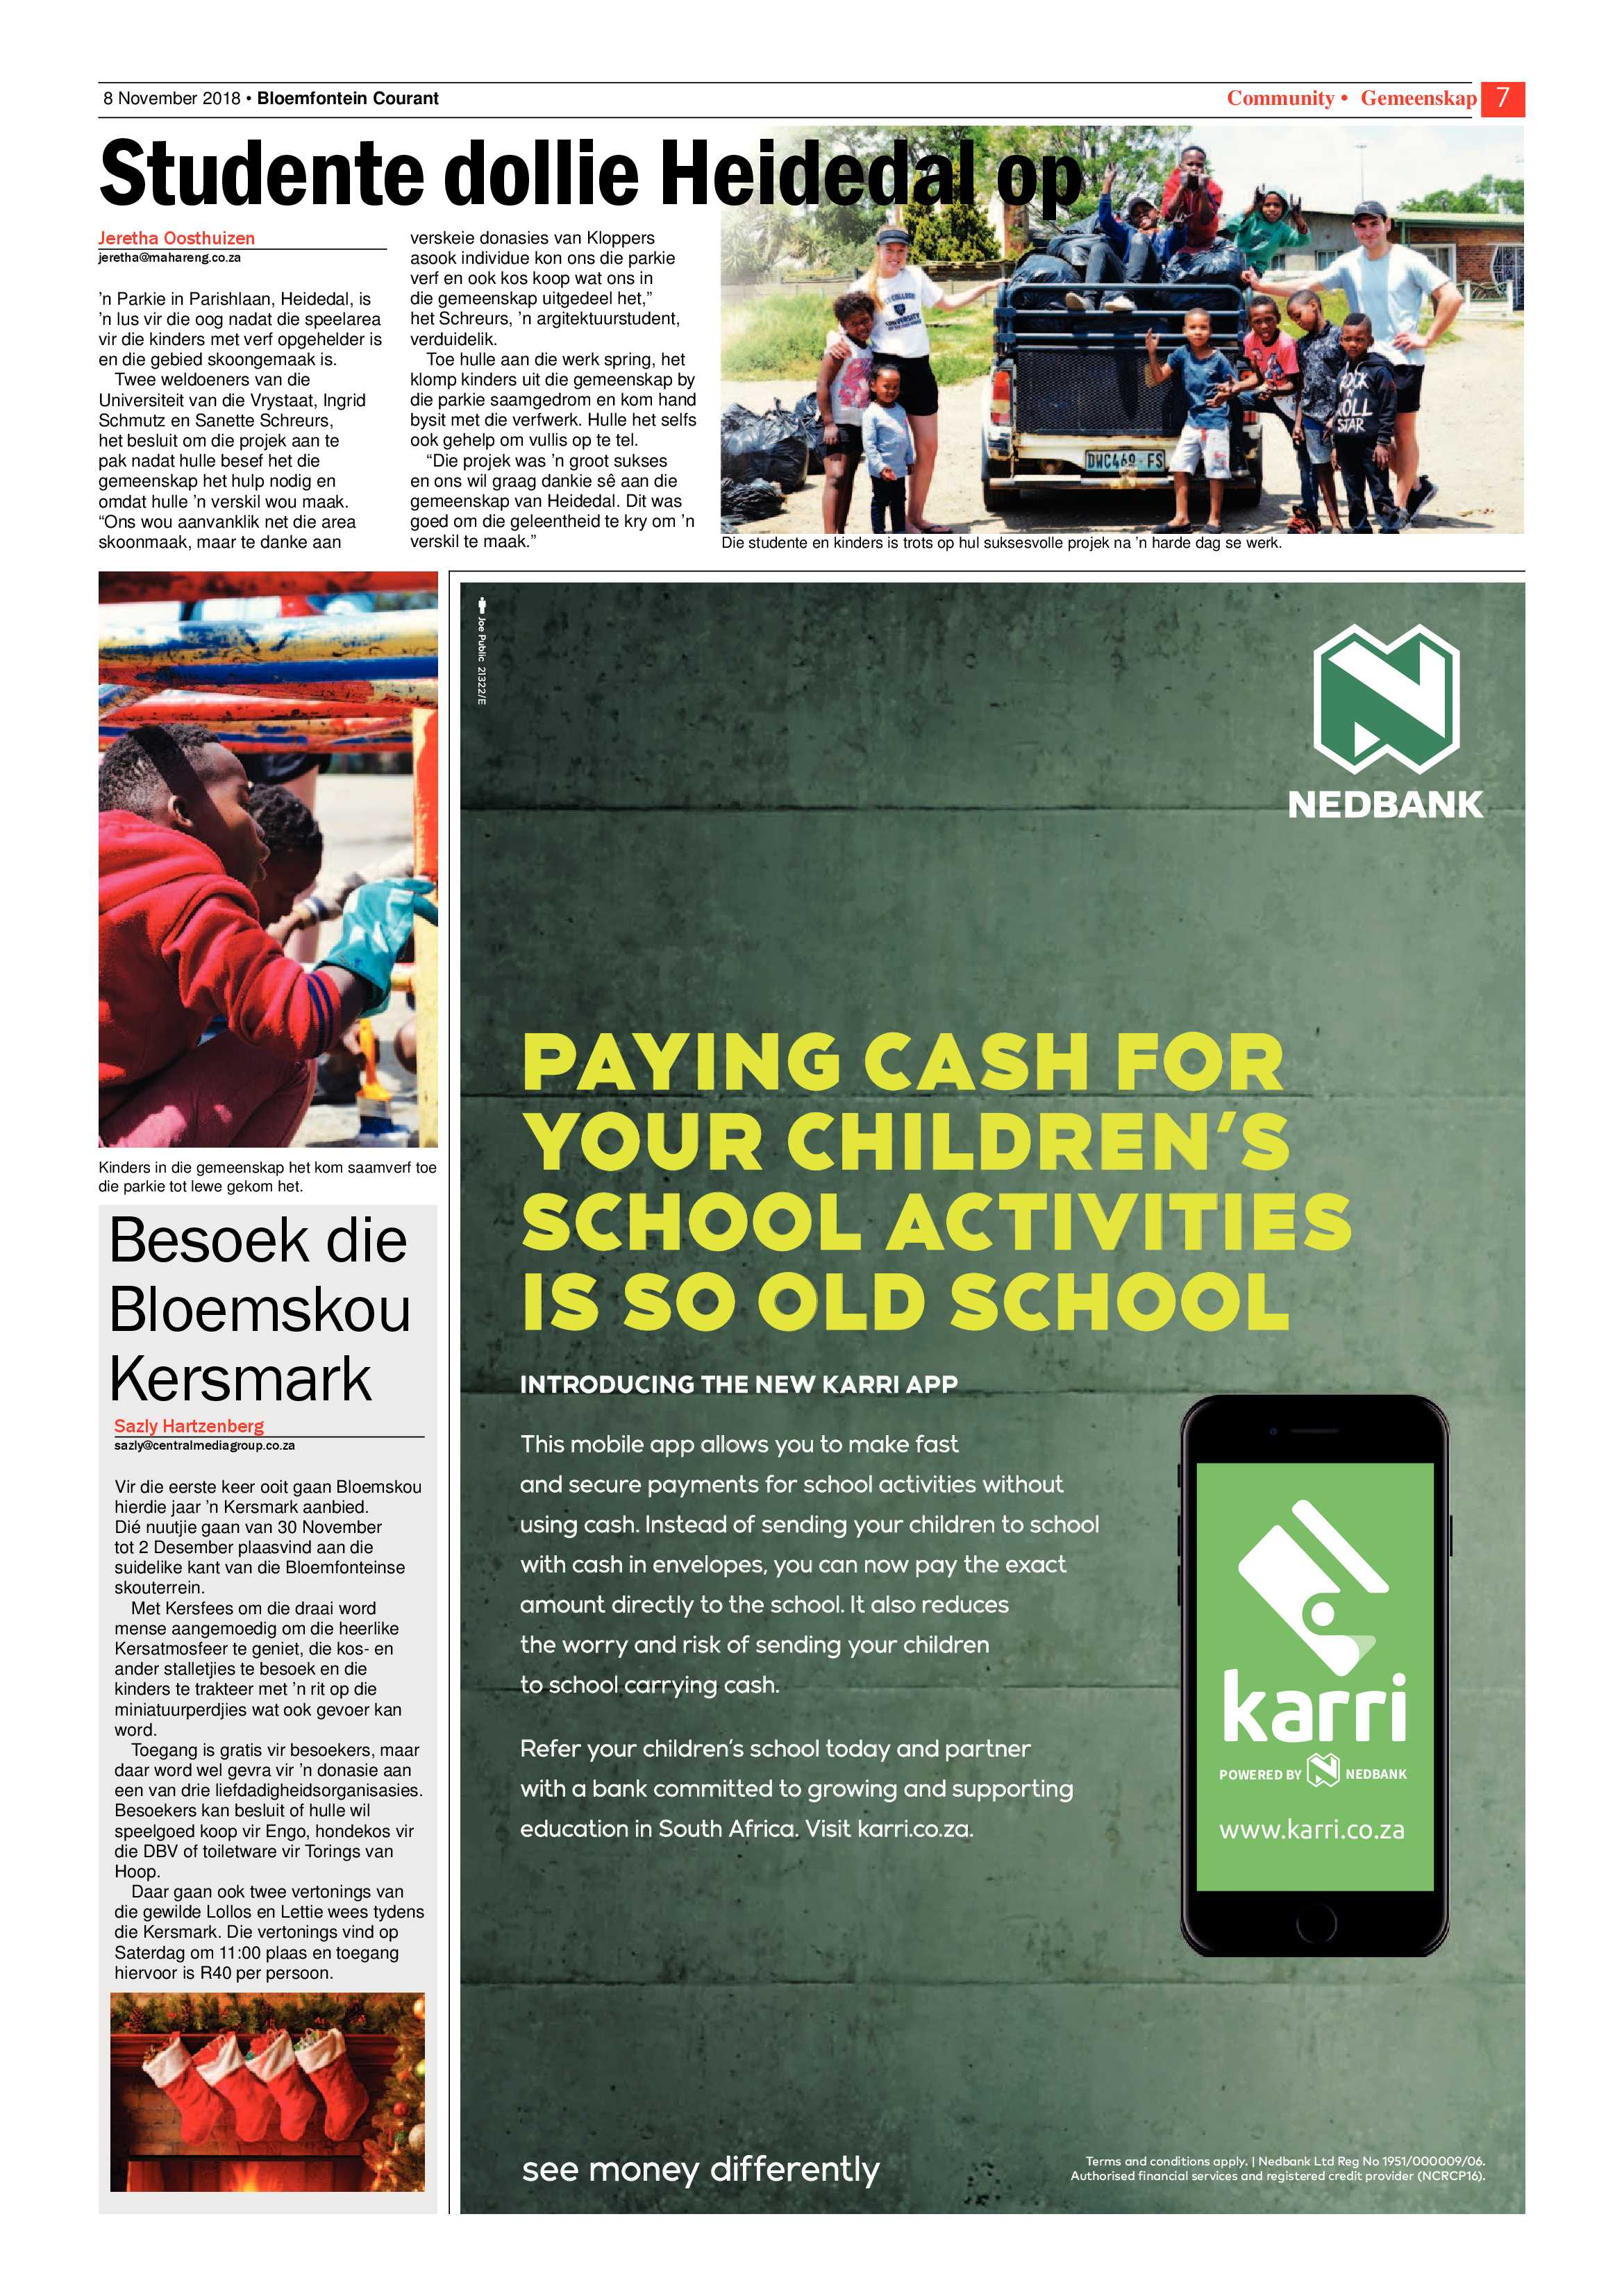 courant-8-november-2018-epapers-page-7